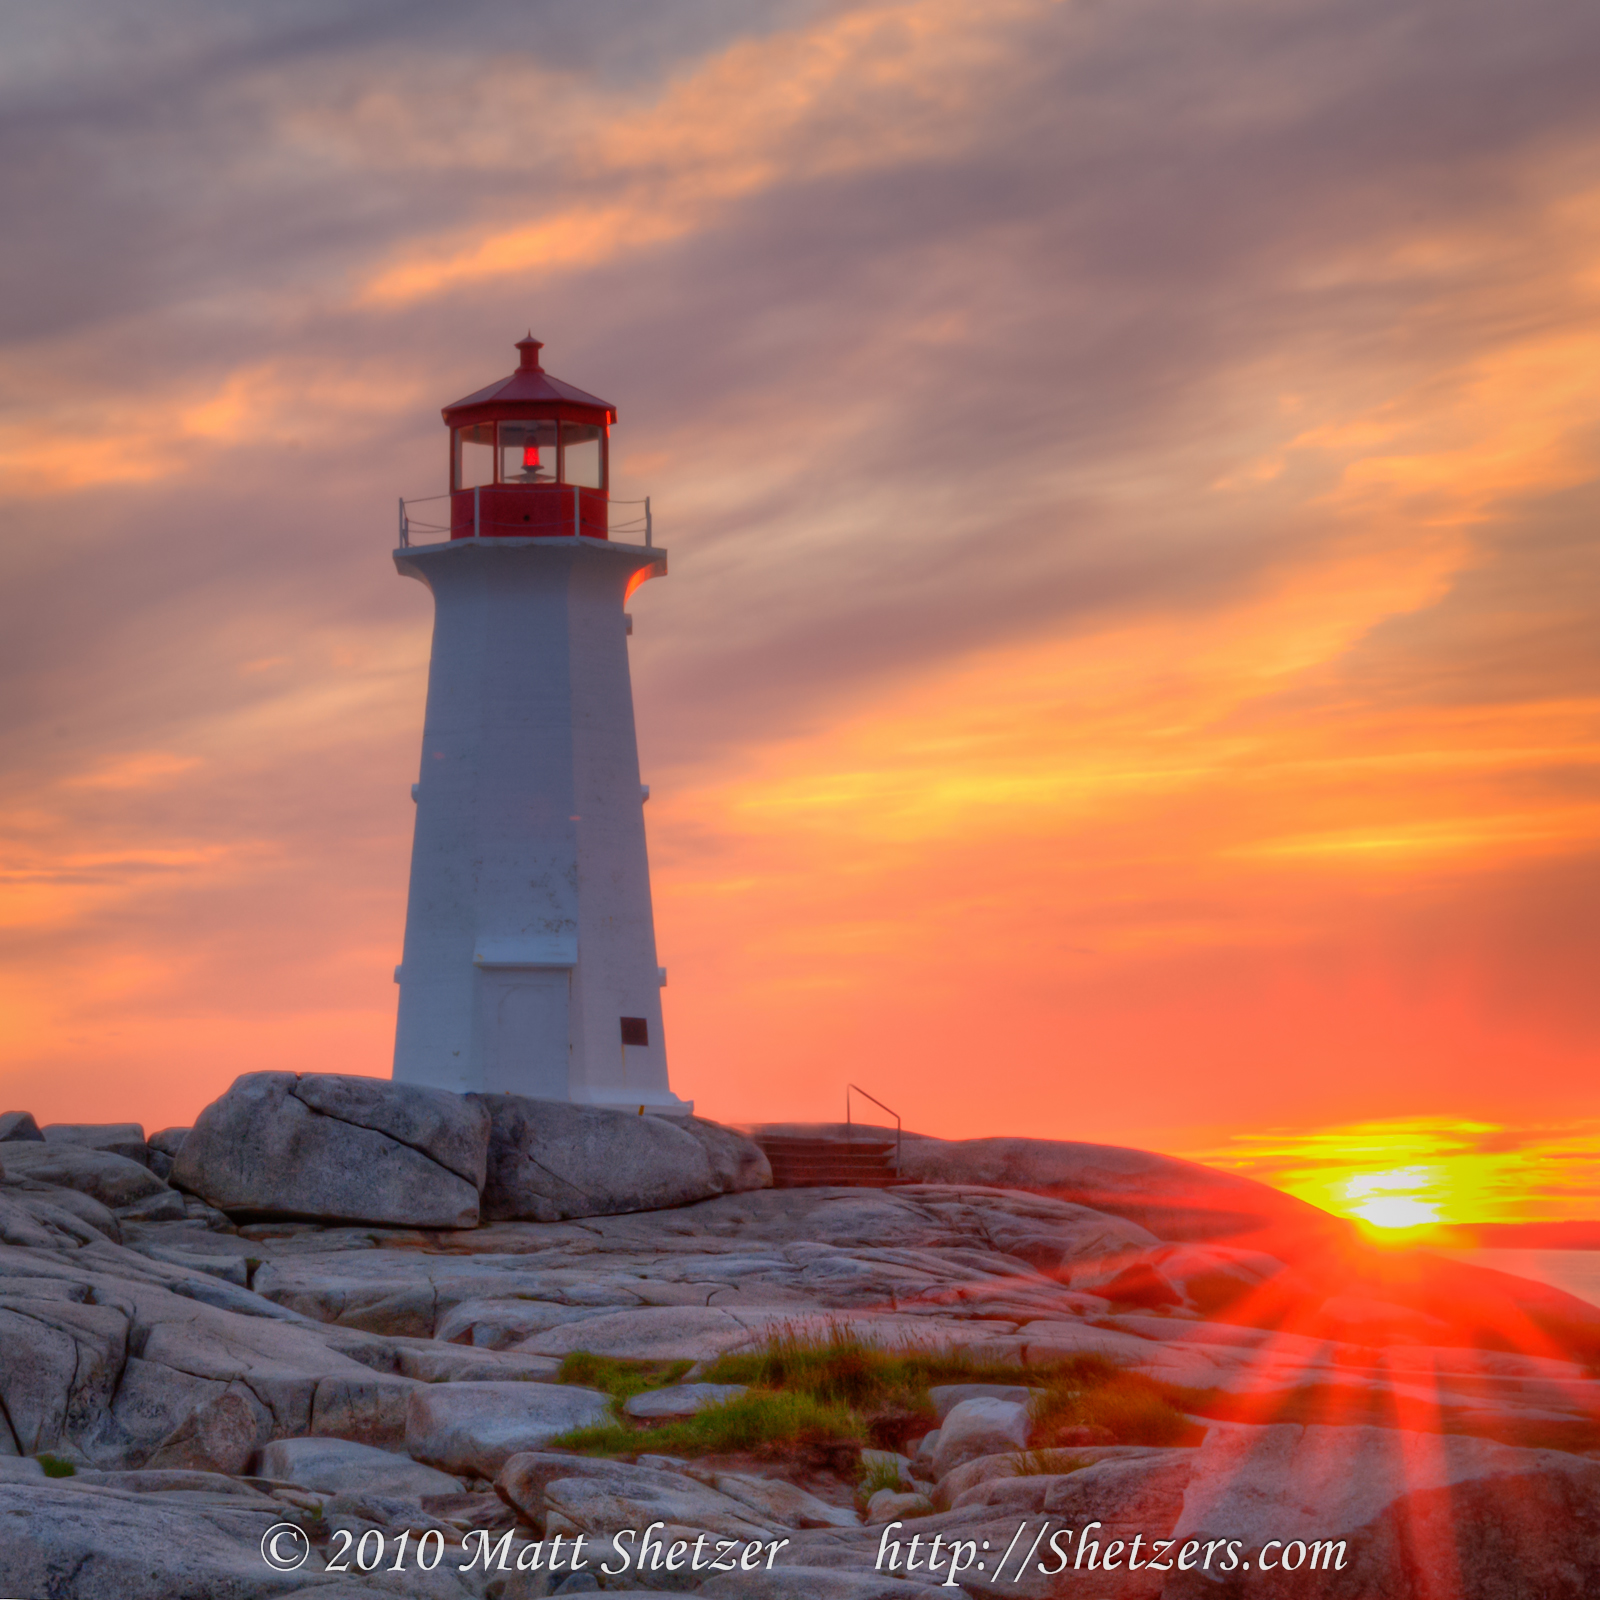 The New Small House Our Travel Blog Newfoundland Update Amp Lighthouse Photos